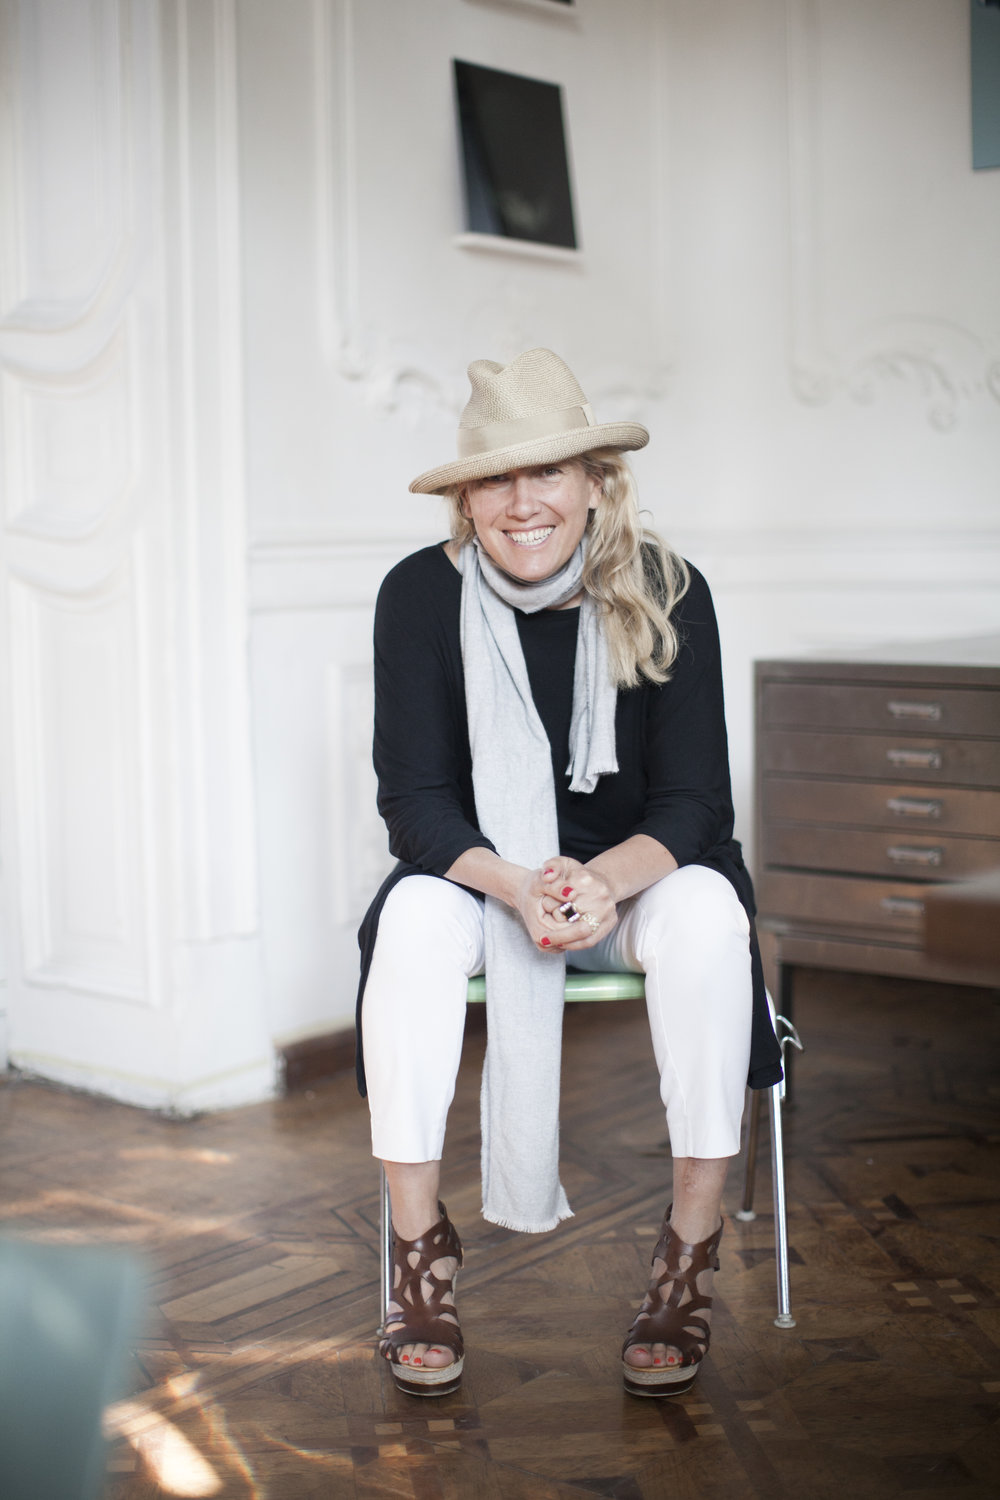 Alexandra Senes, Founder of Kilometre Paris